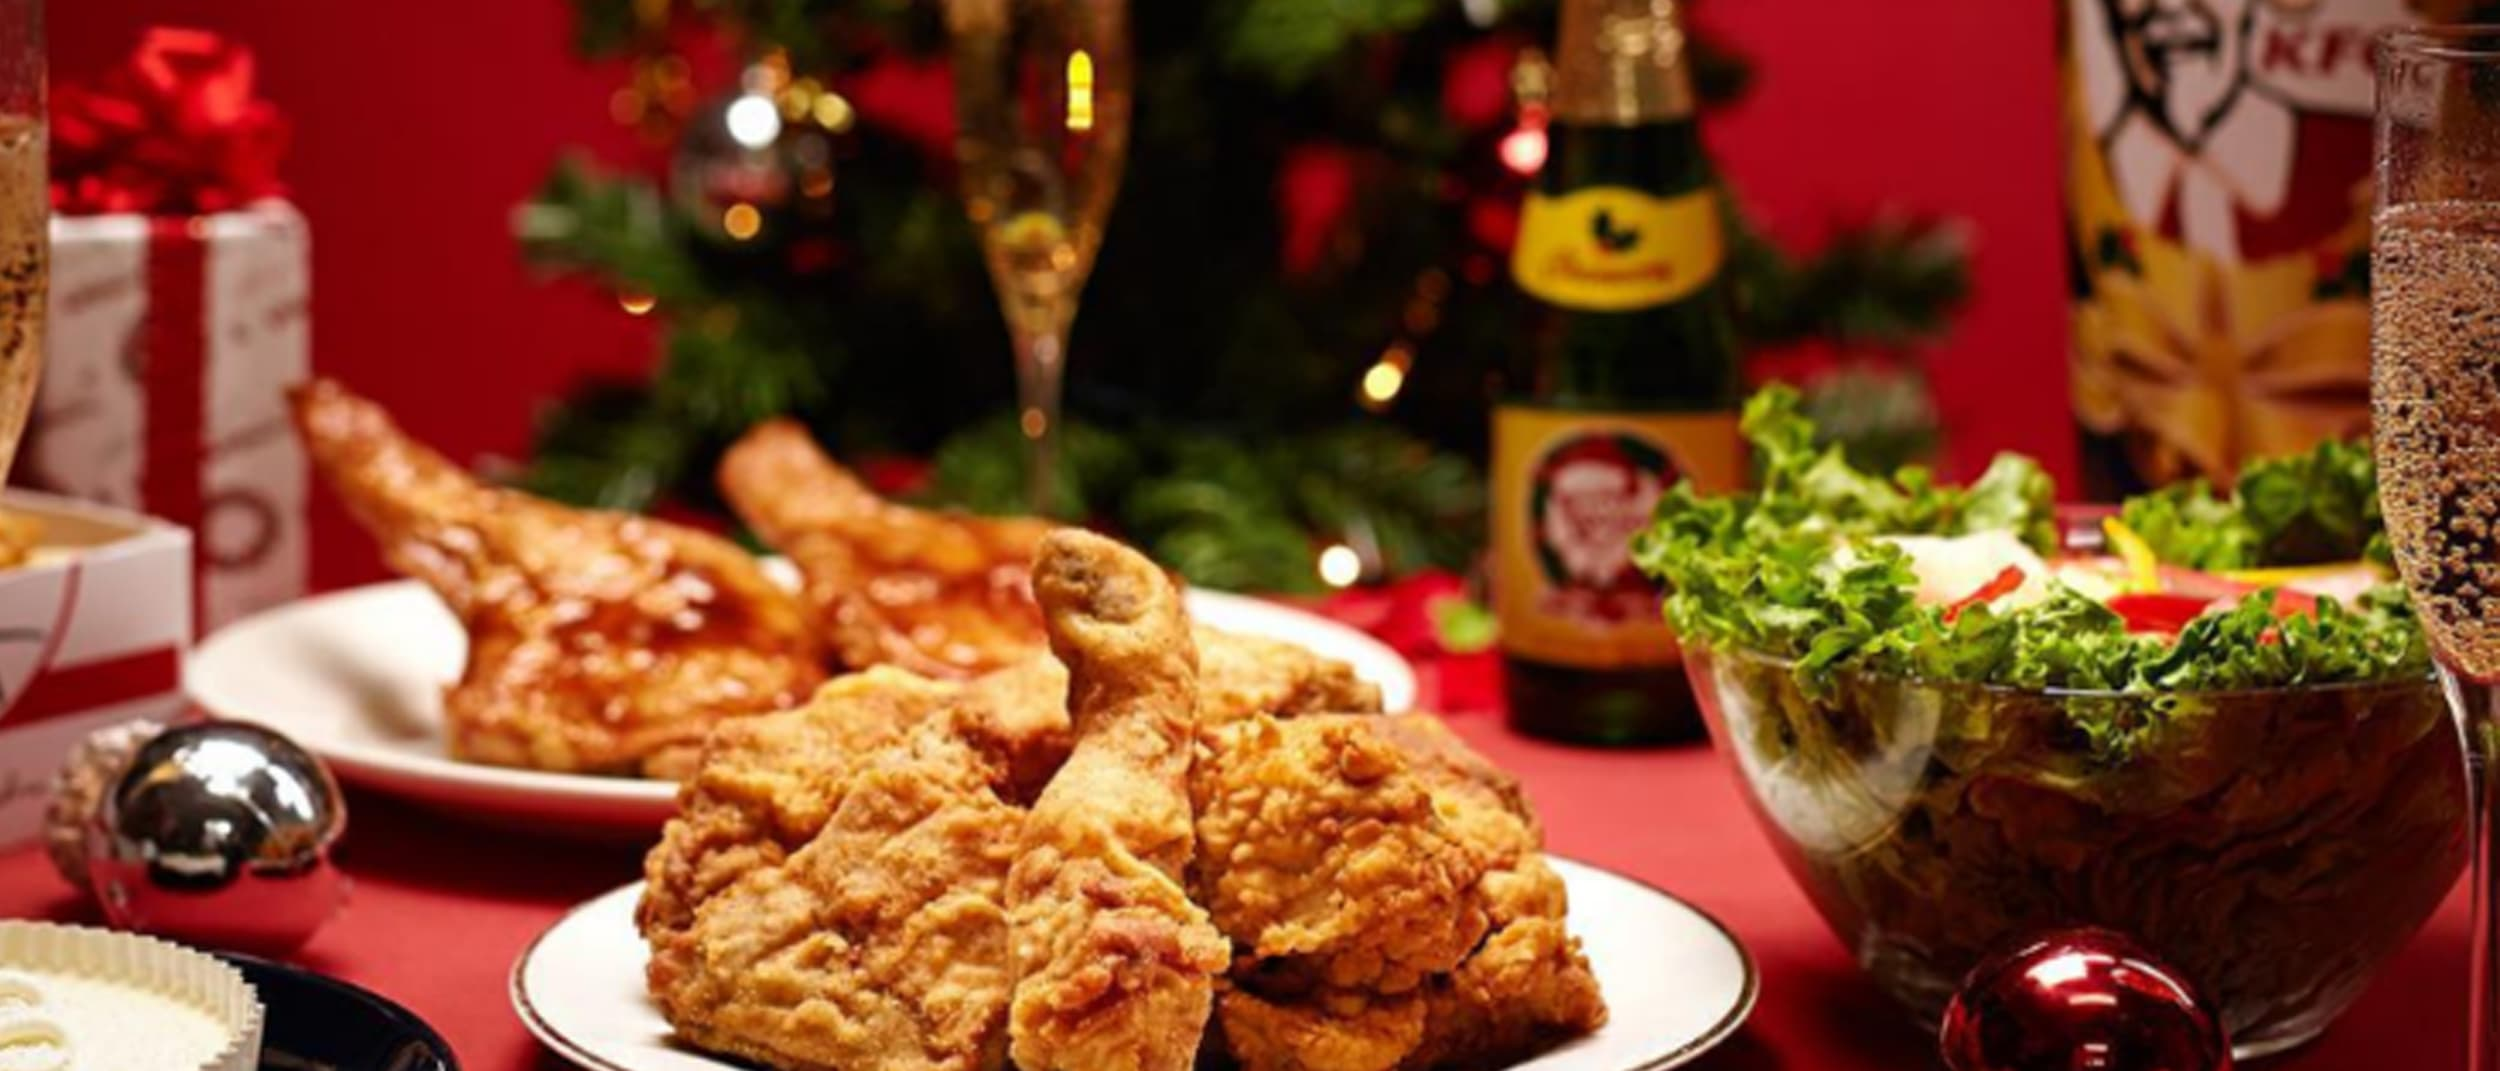 Event - Win a $20 voucher from KFC this Christmas